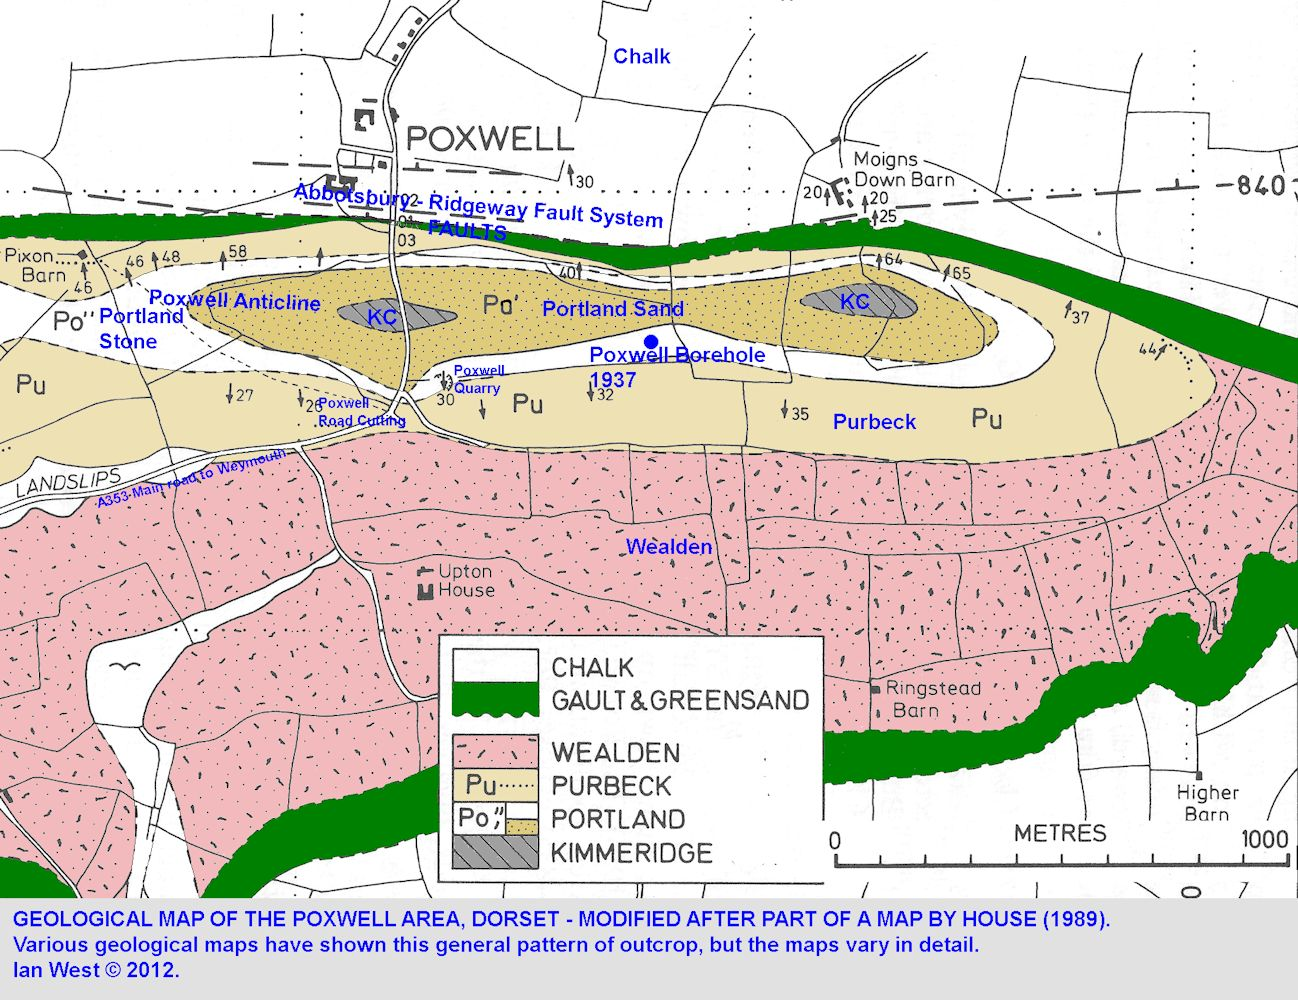 A large-scale geological map of the Poxwell area, modified after House (1989)